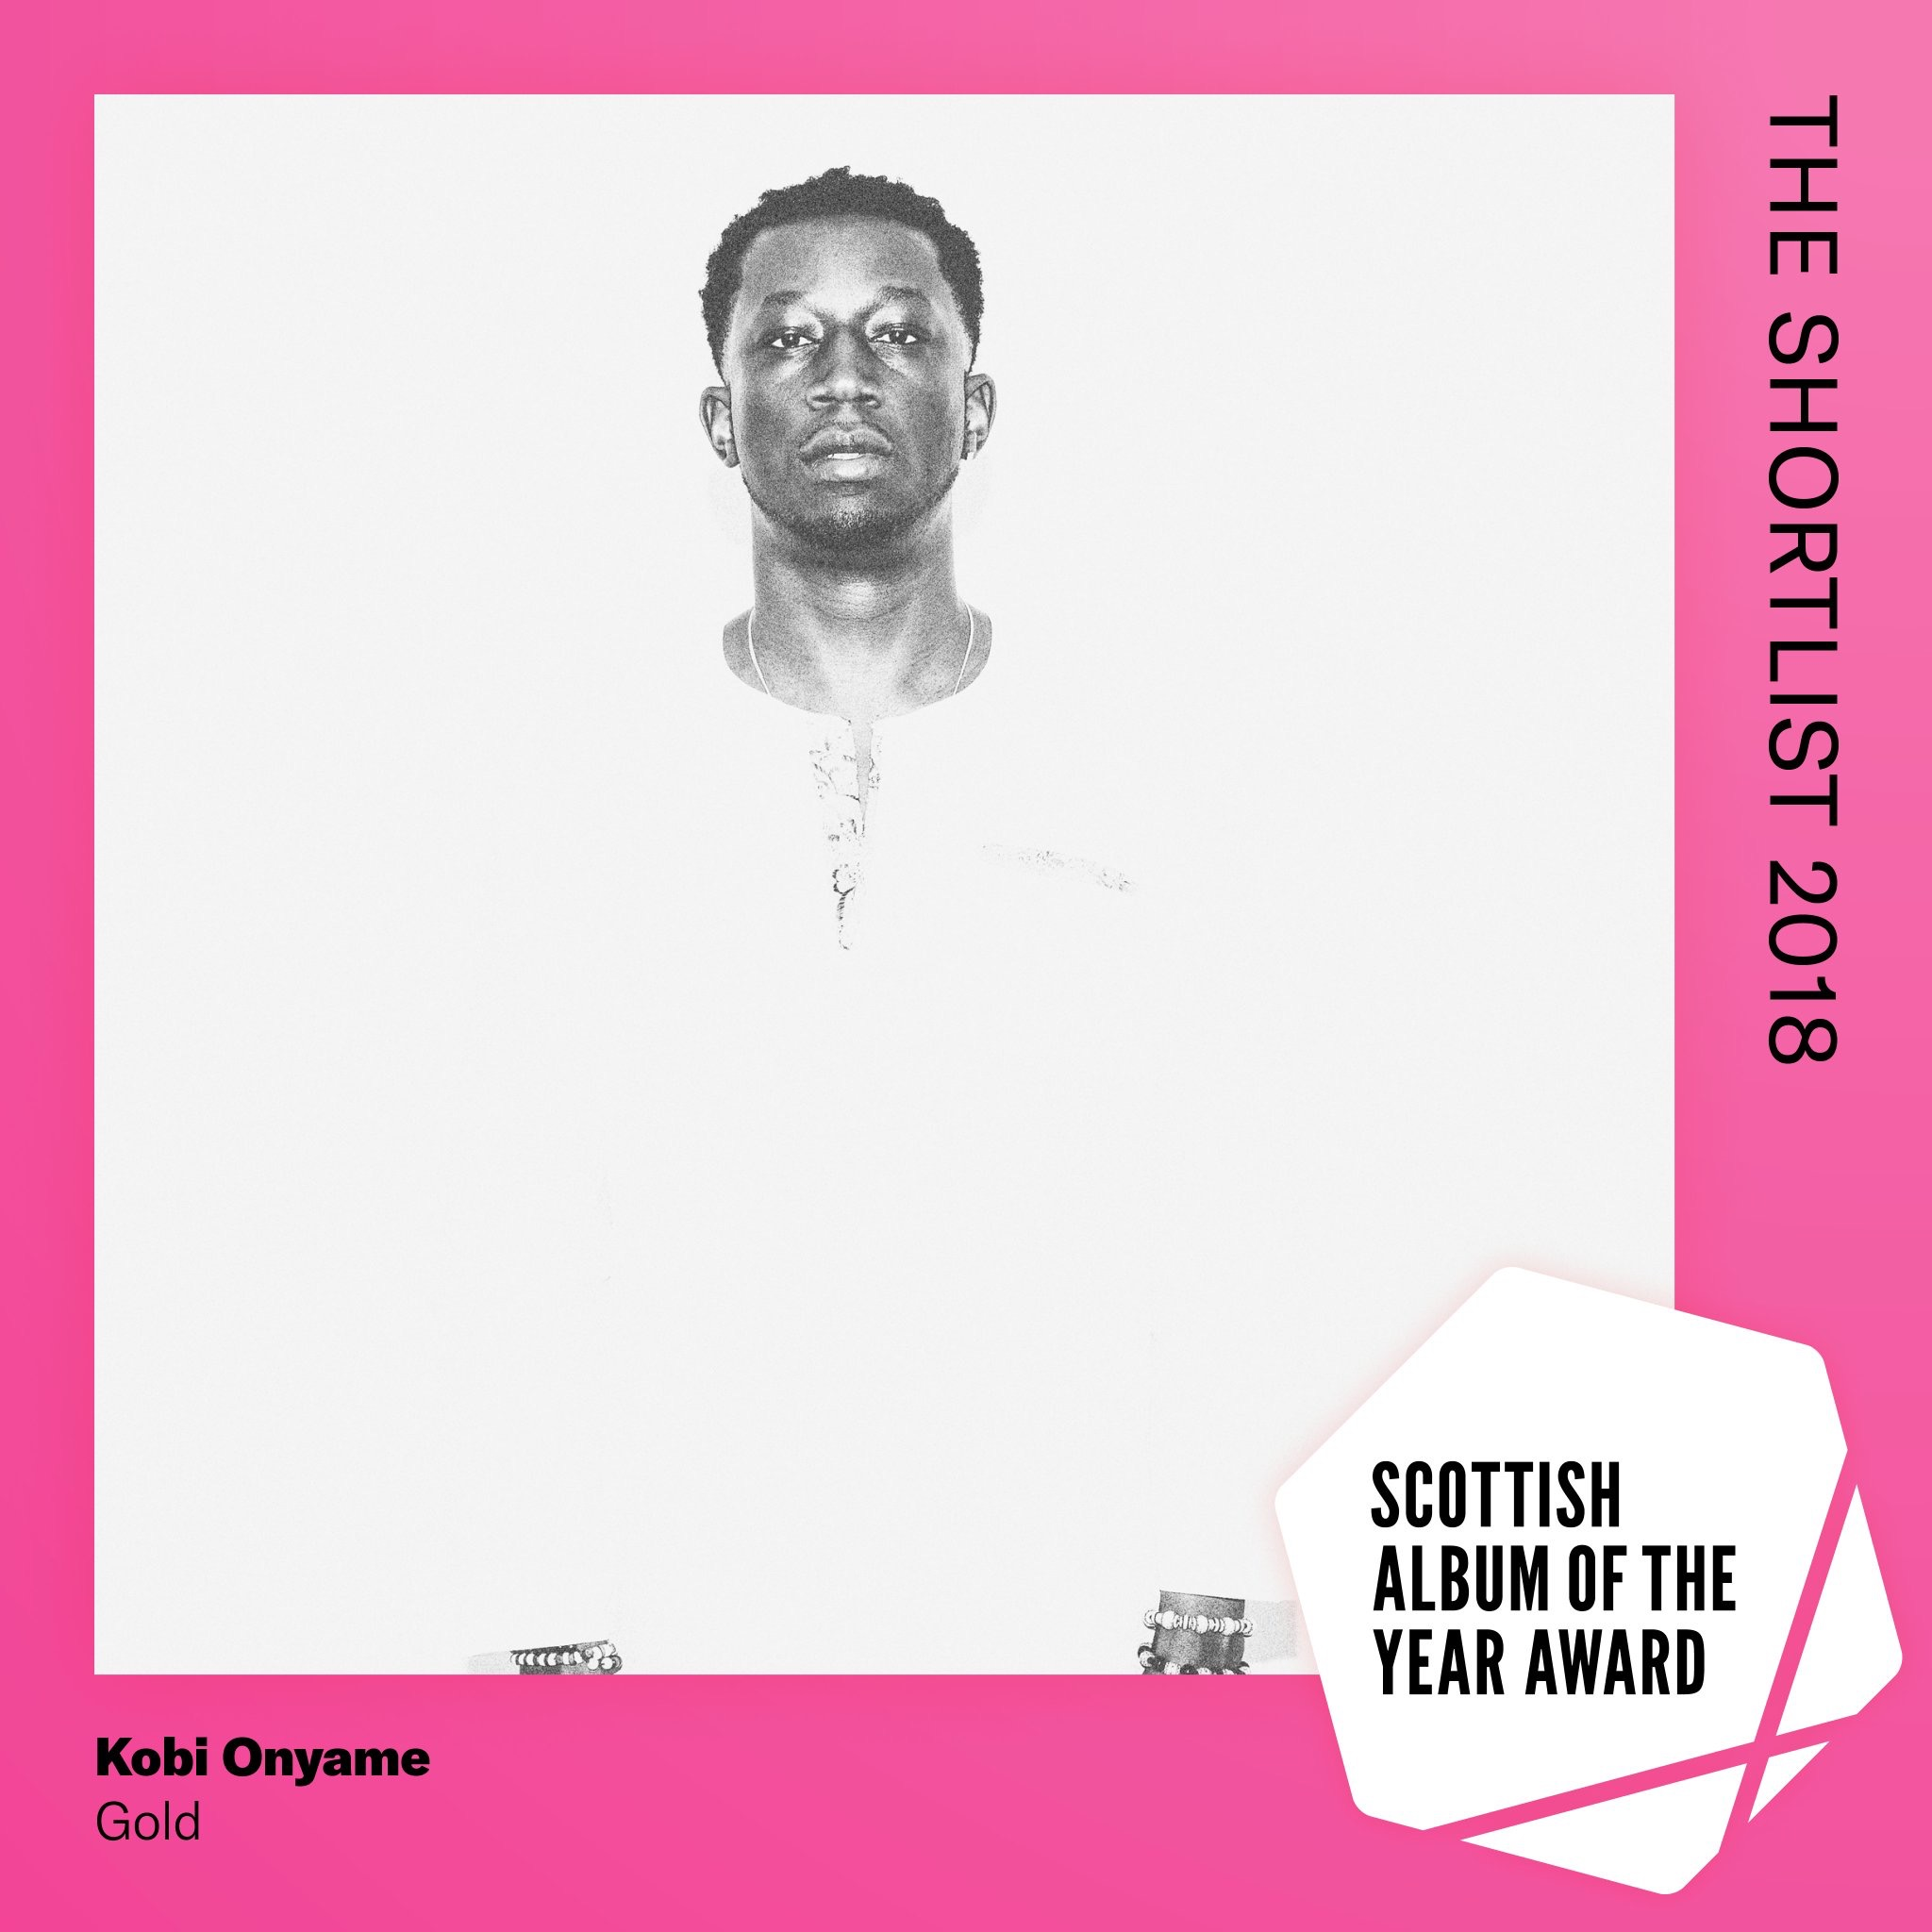 Kobi Onyame's GOLD picks up a shortlist nomination in the  2018 Scottish Album of the Year nominations. - Released on September 1st 2017, the album boasted excellent reviews and stand out tracks including 'Chosen Ones', 'Wedadi', 'Gold' and 'Still We Rise'. The self produced and released album is Kobi's third album and his first SAY Award nomination. The album mashes hip-hop undertones with the traditional highlife and afrobeat rhythms of his Ghanaian heritage.The SAY Award is a prestigious and exciting arts prize produced by the Scottish Music Industry Association (SMIA). Boasting a lucrative £20,000 prize for the winner and nine runner up prizes of £1,000 each, the award celebrates, promotes and rewards the most outstanding Scottish albums released each year.